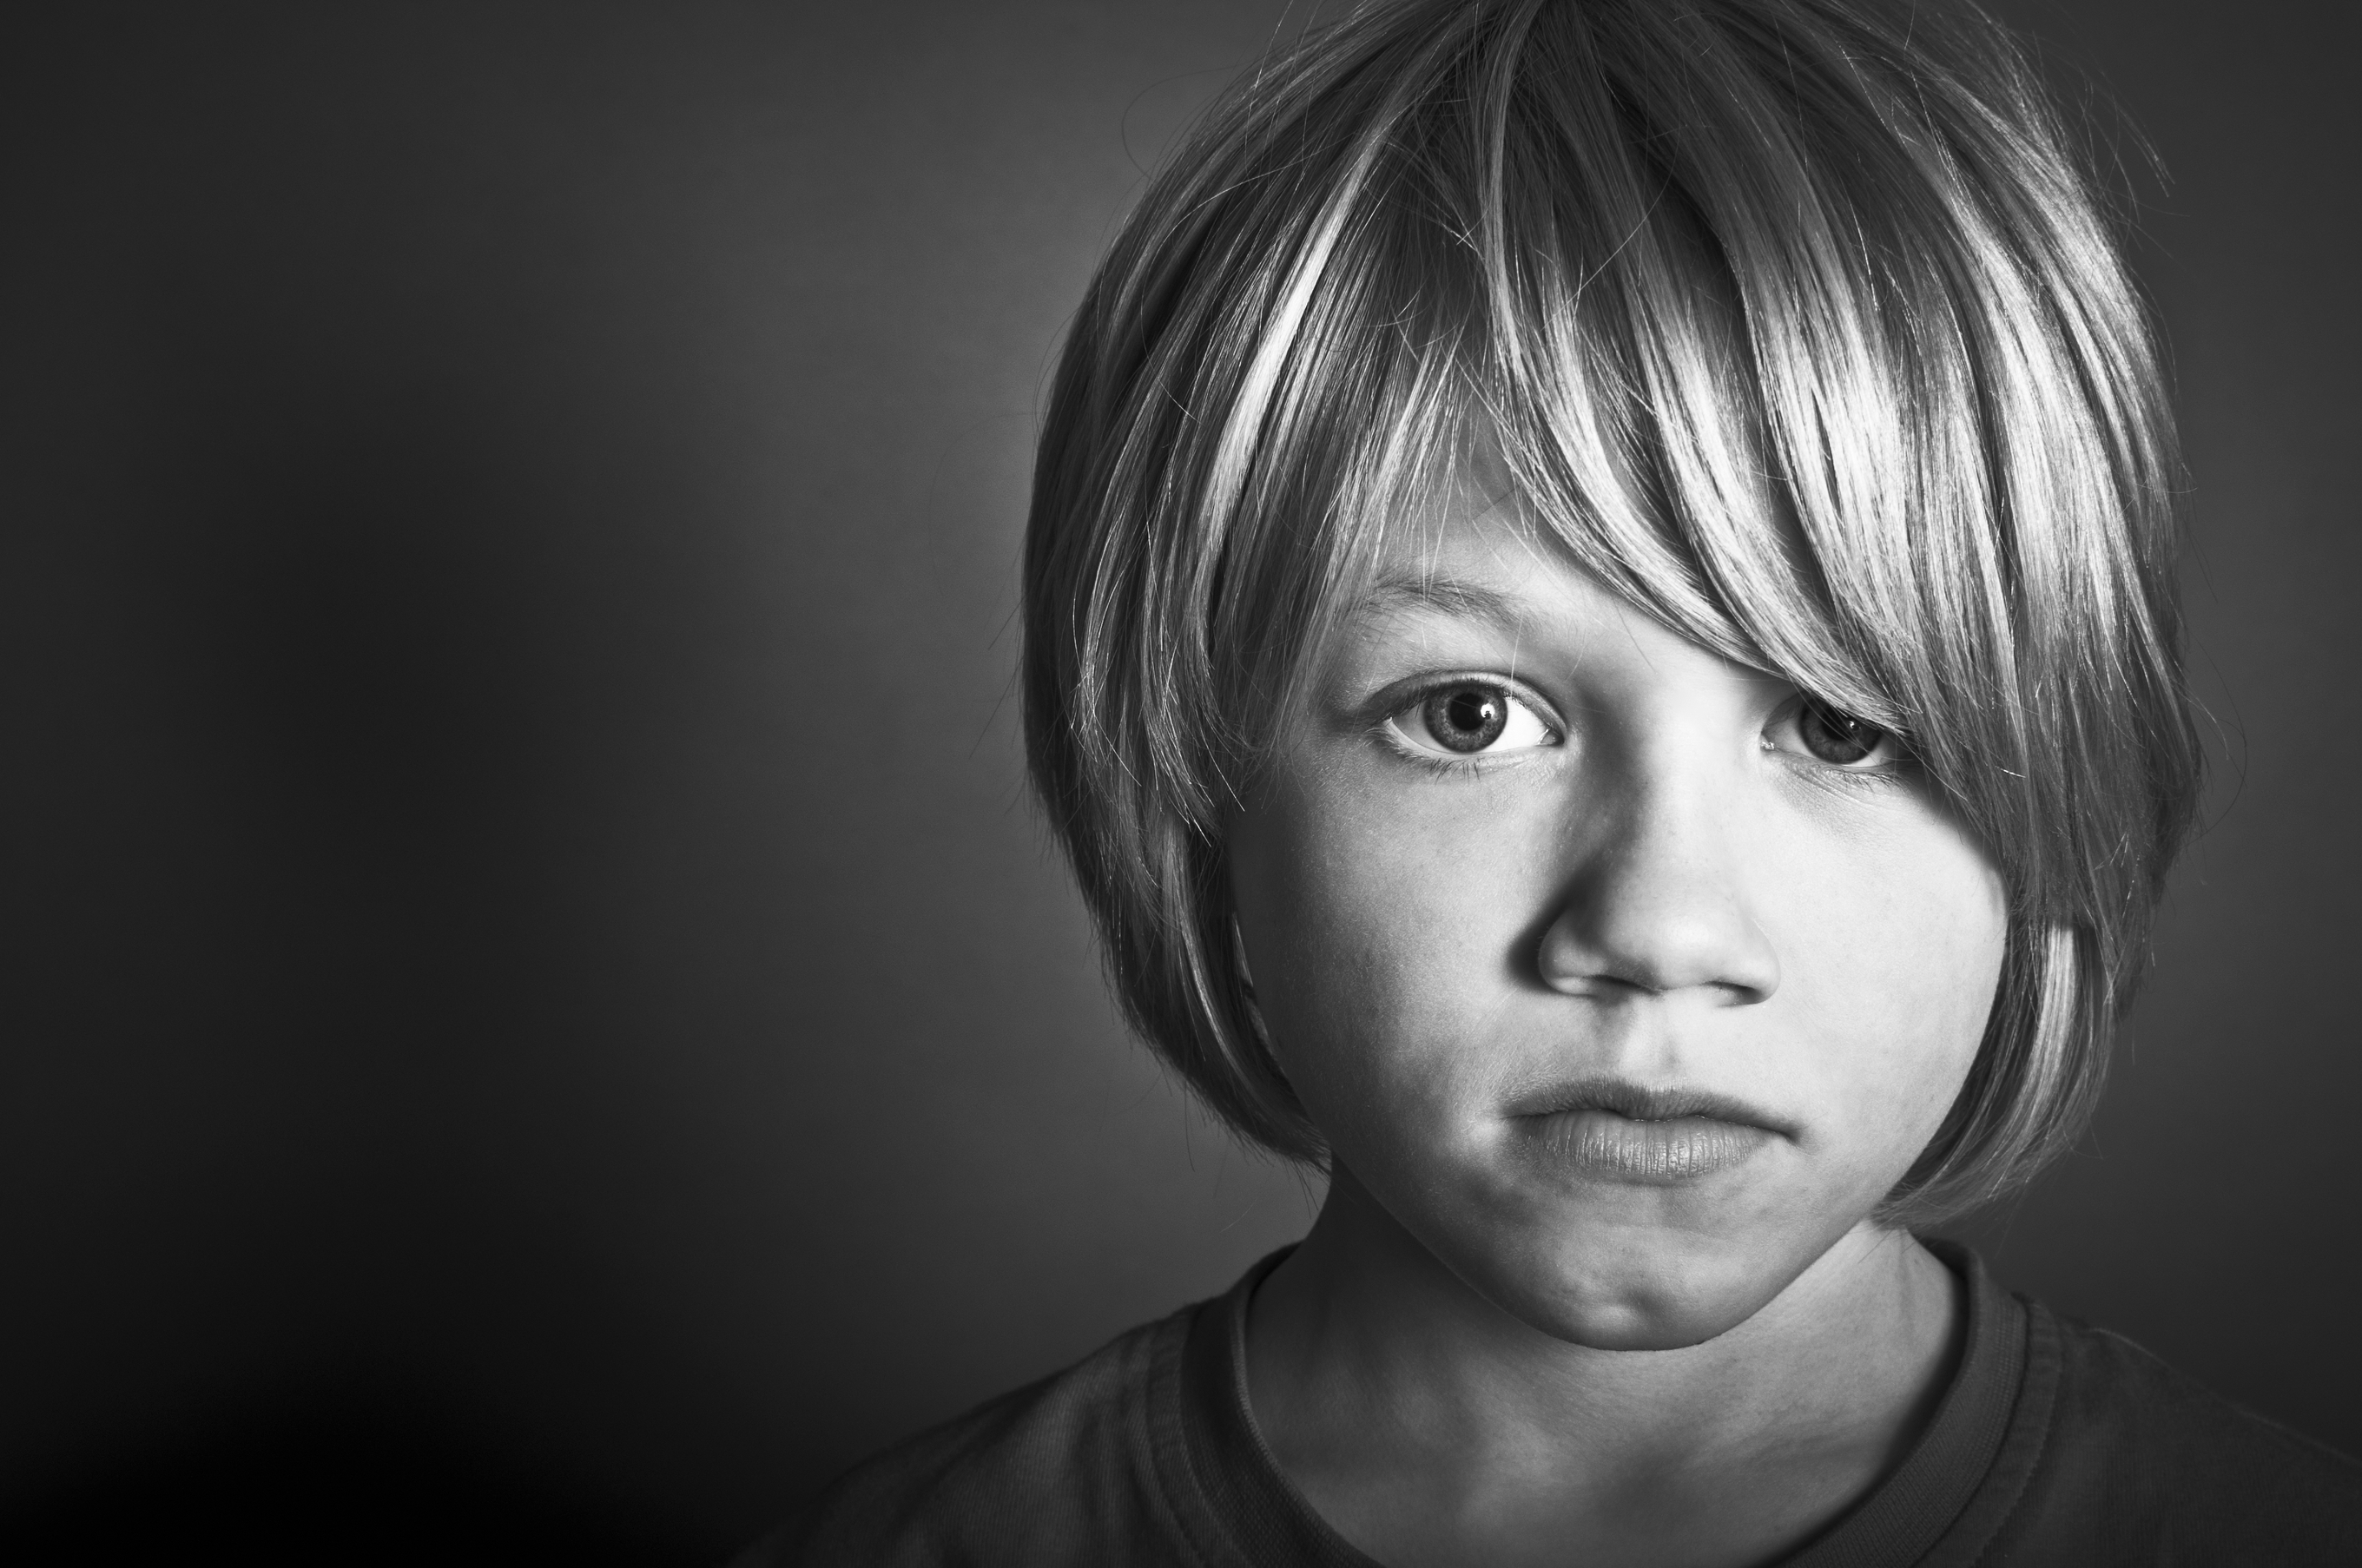 Healing the Wounds of Childhood Trauma